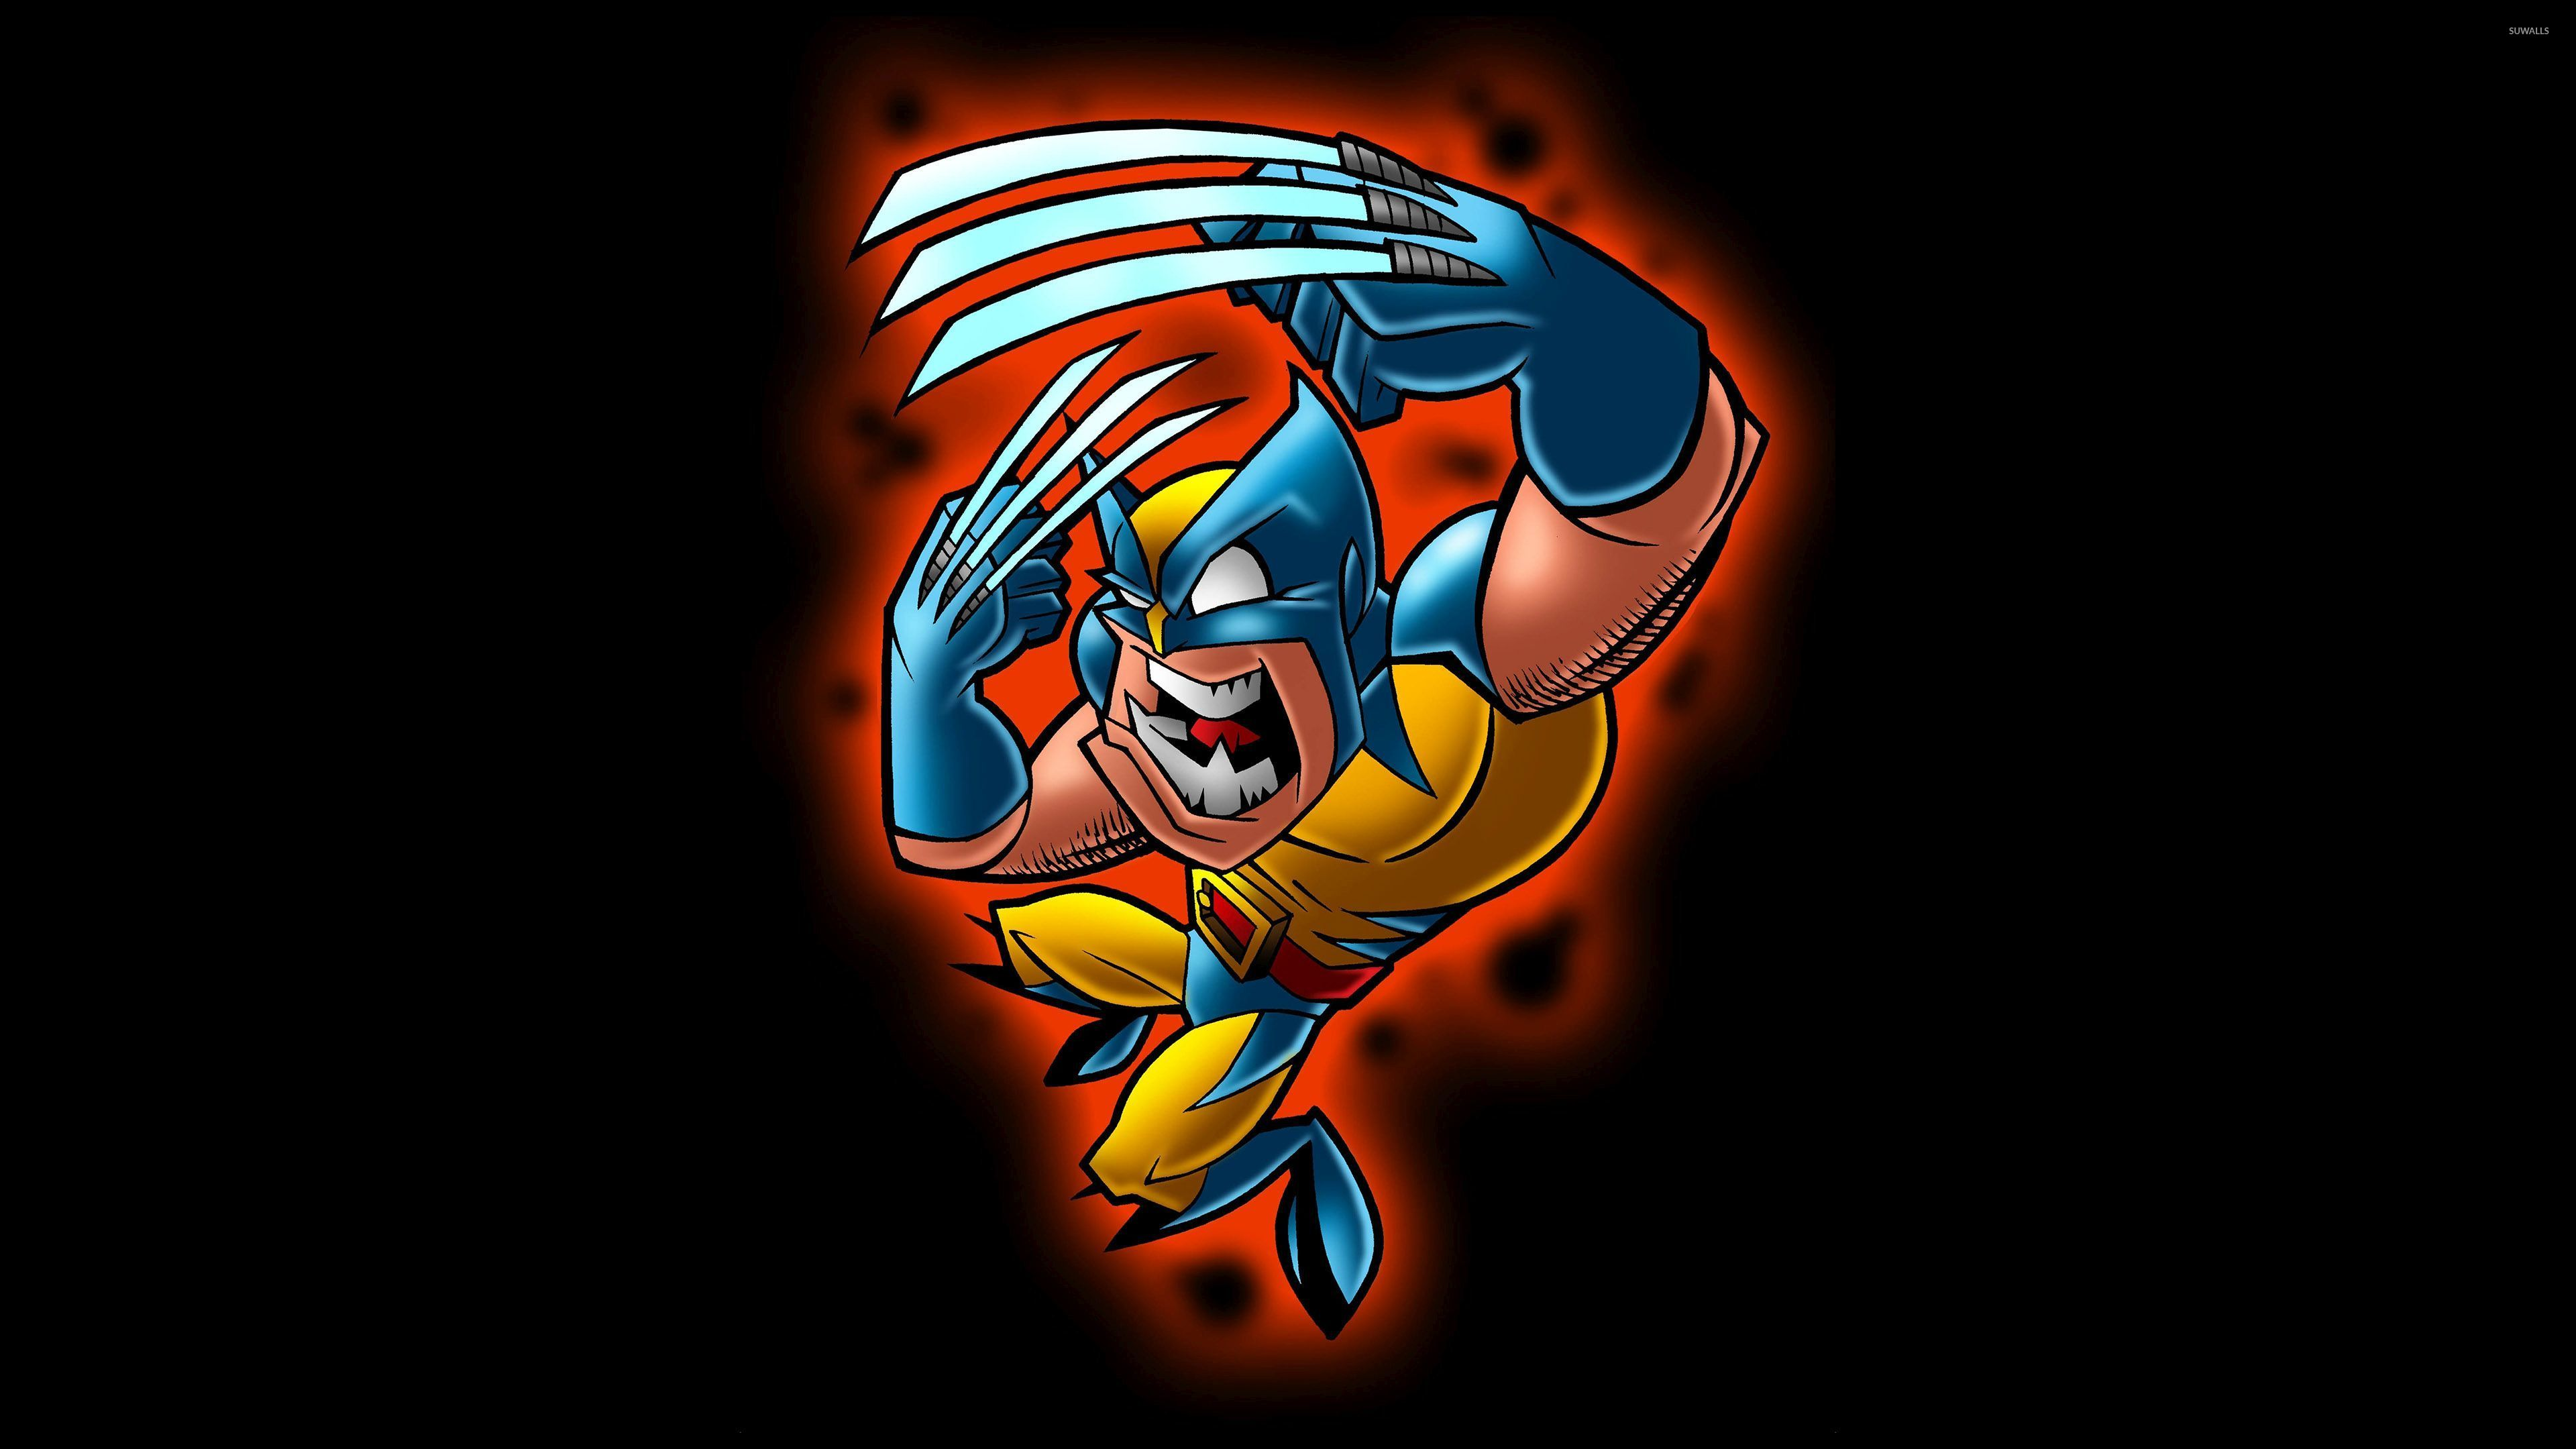 Funny Wolverine wallpaper Funny wallpapers